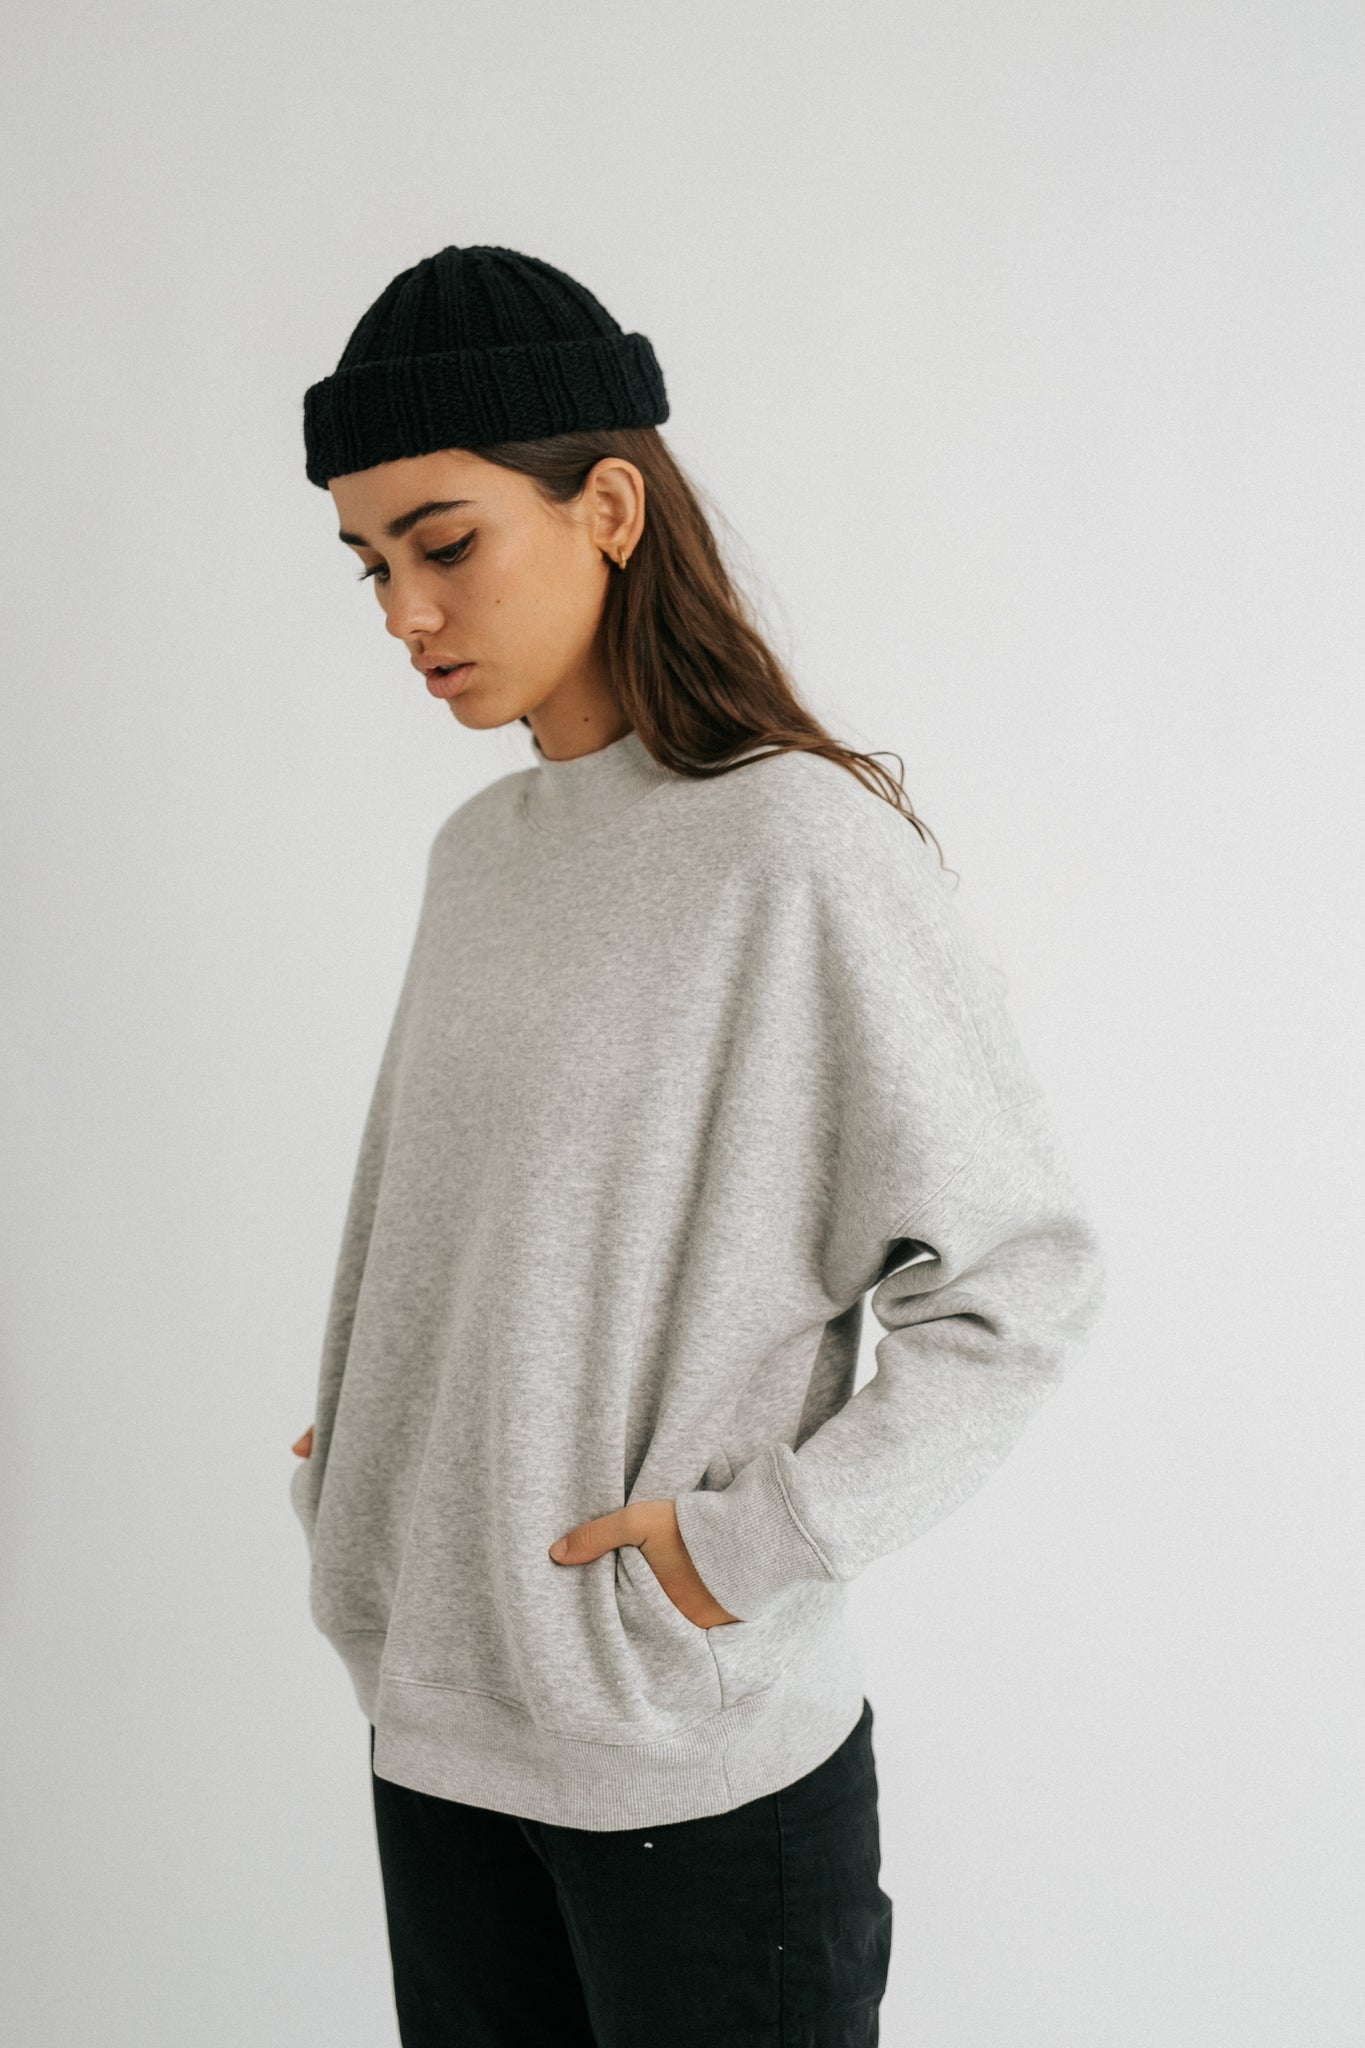 The Ava Sweatshirt